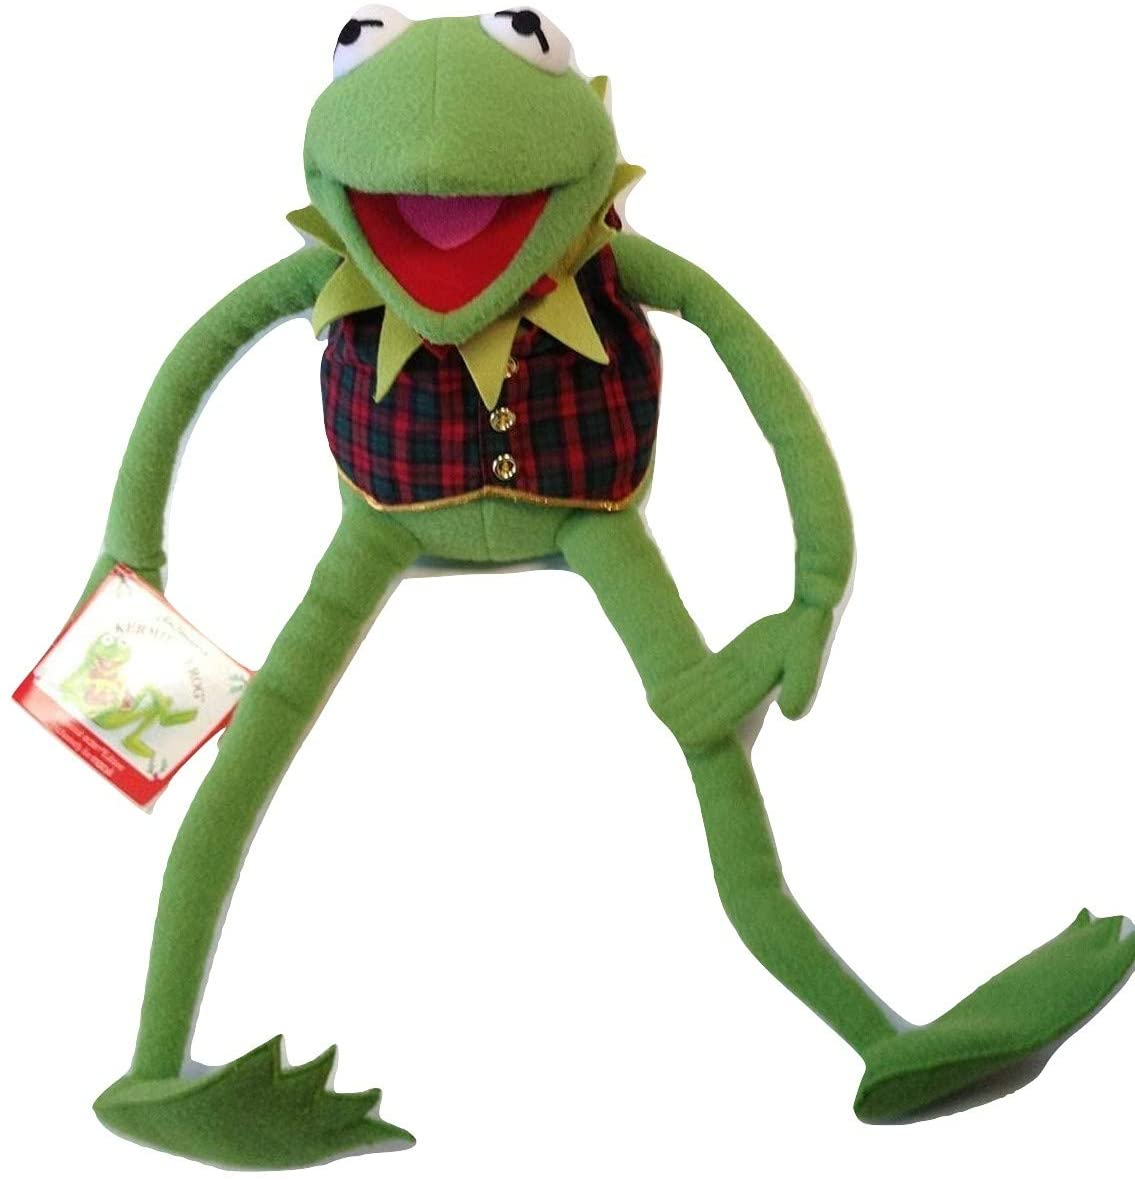 Kermit the Frog Plush Eden Edition for Macy's Plaid Vest